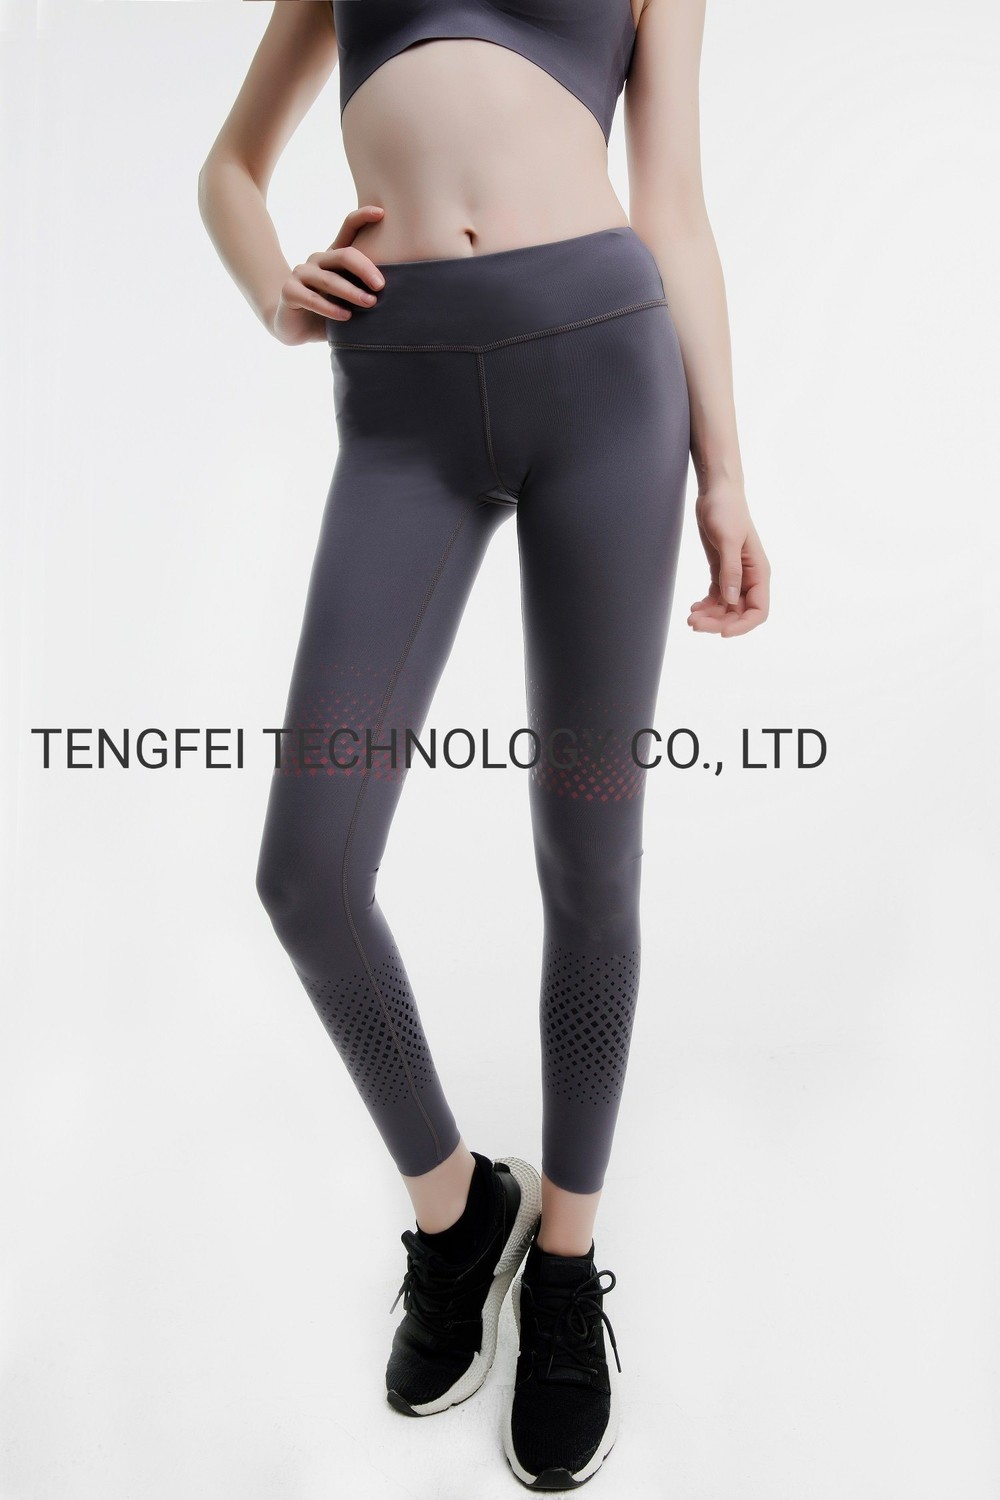 Limax Leisure and Compressive Slimming Yoga Gym Sports Legging